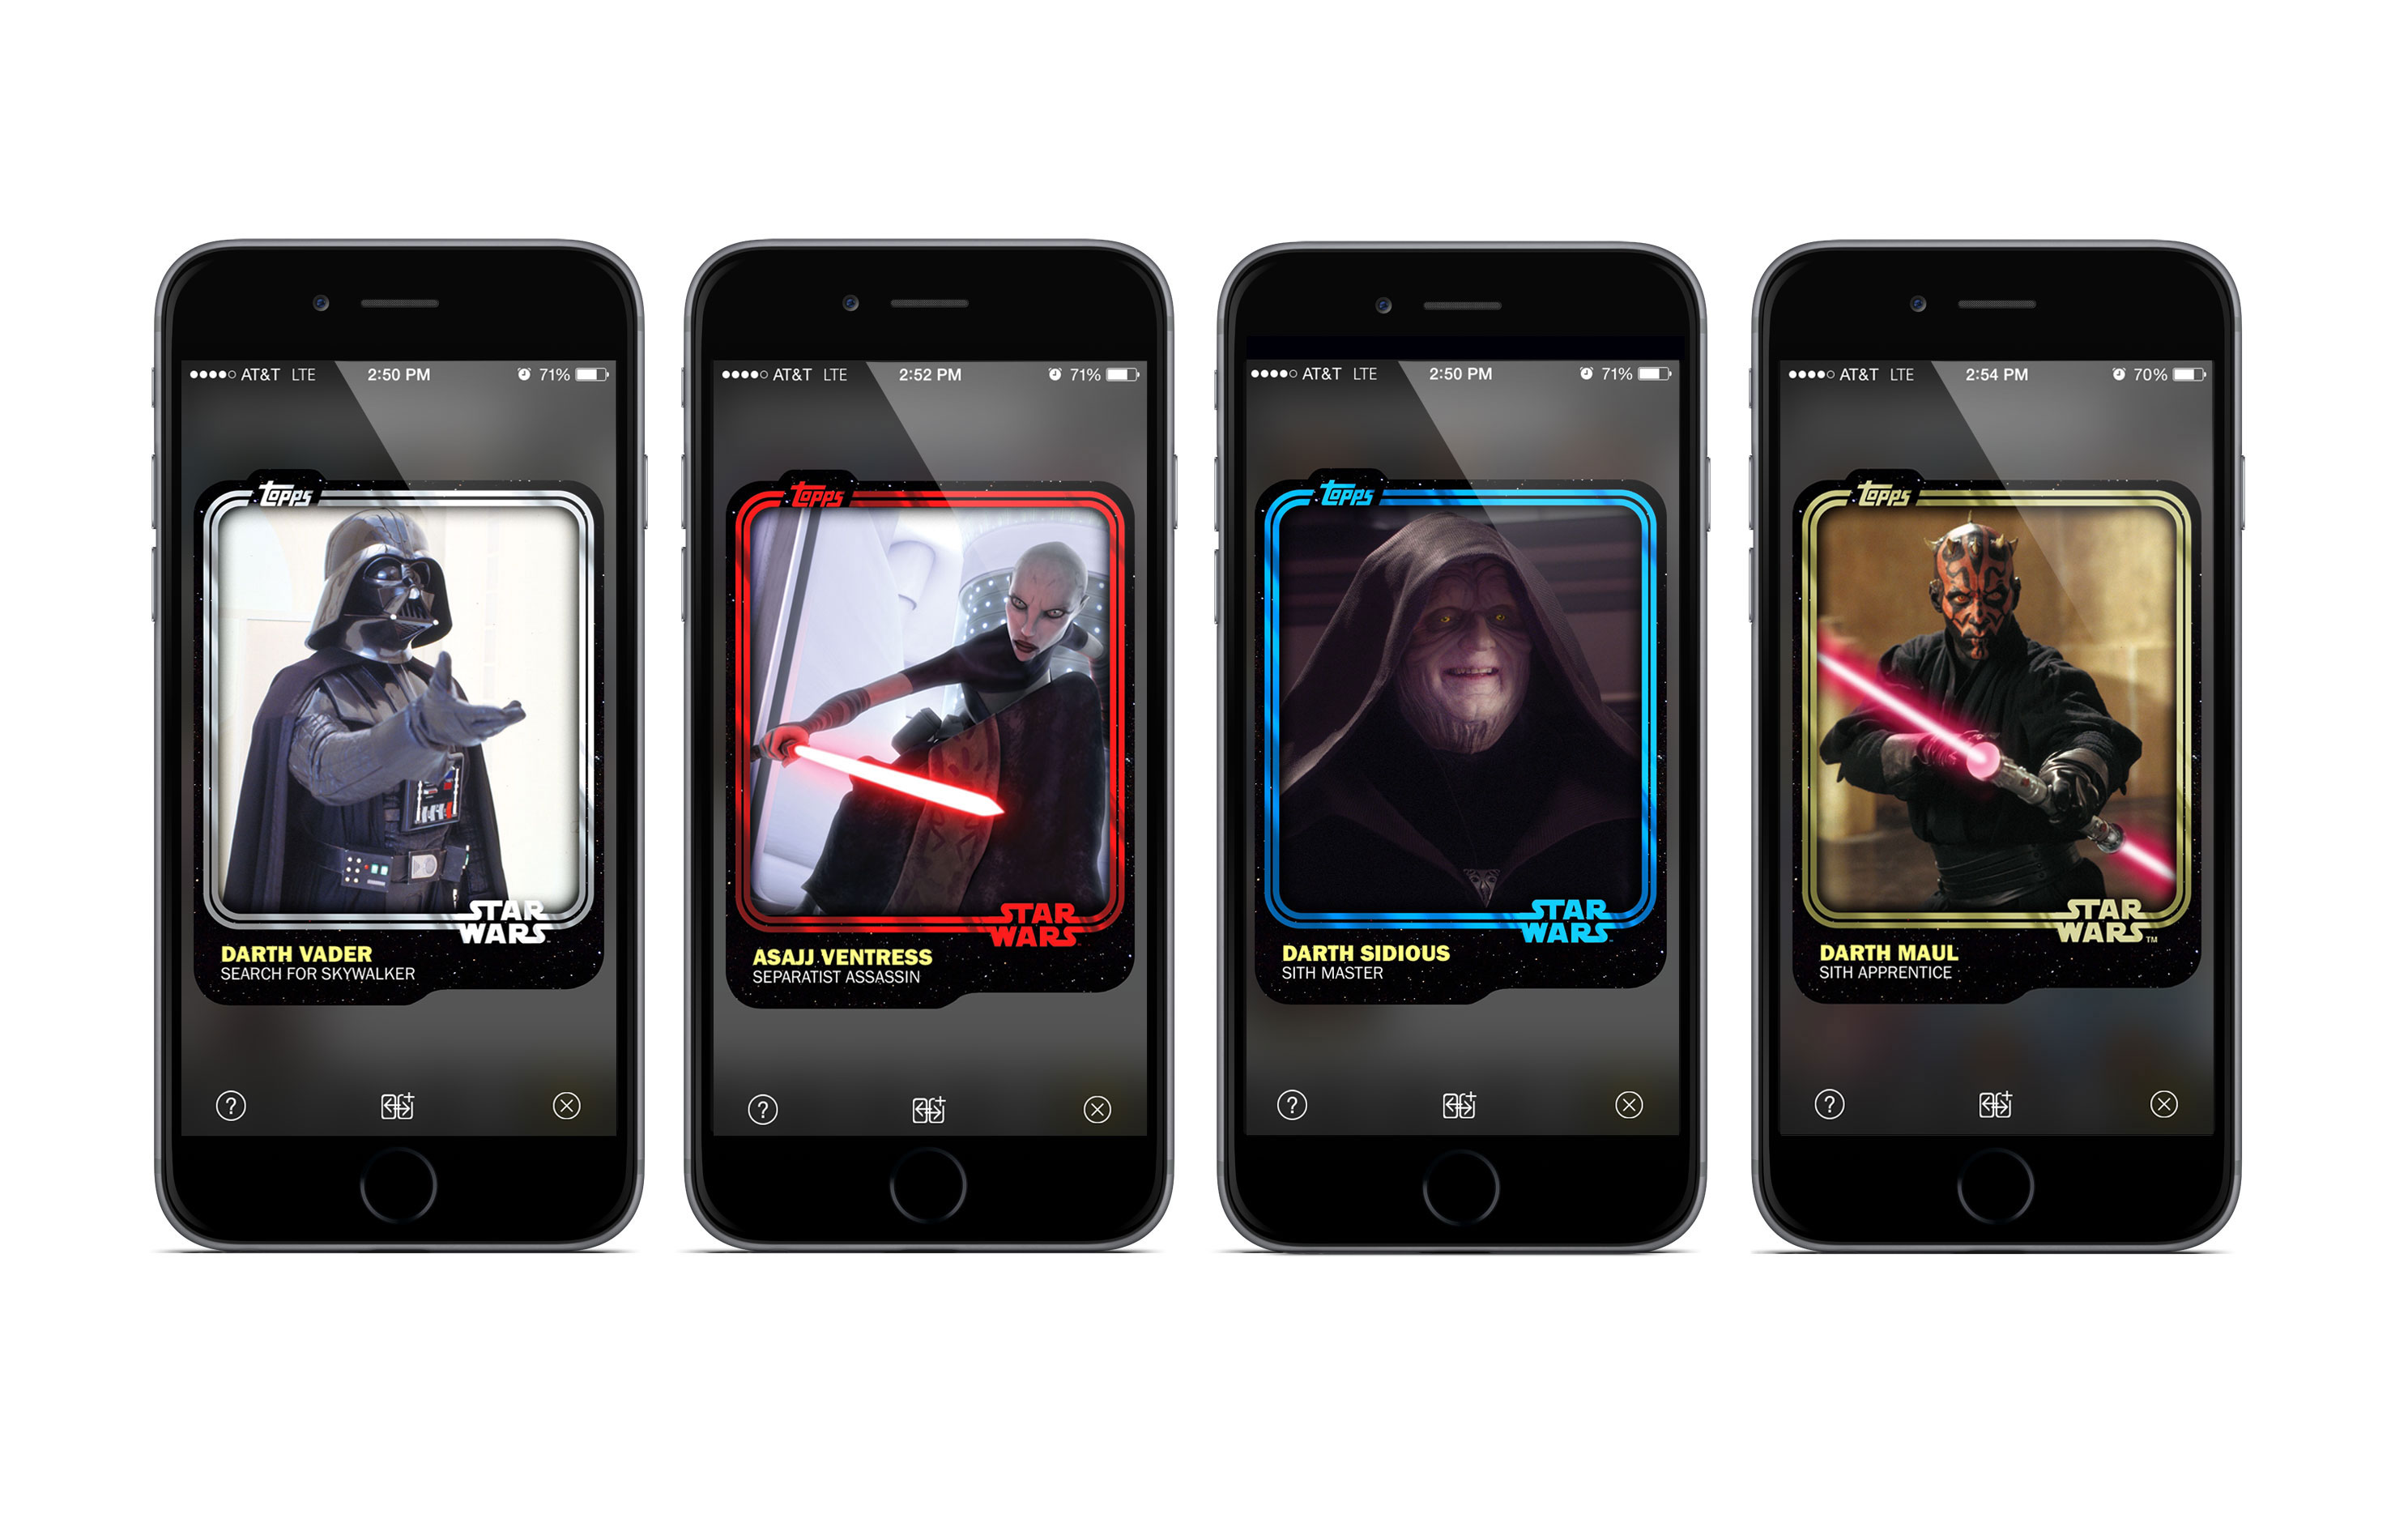 The new Star Wars: Card Trader app from Topps features digital cards from 'Star Wars: The Force Awakens'